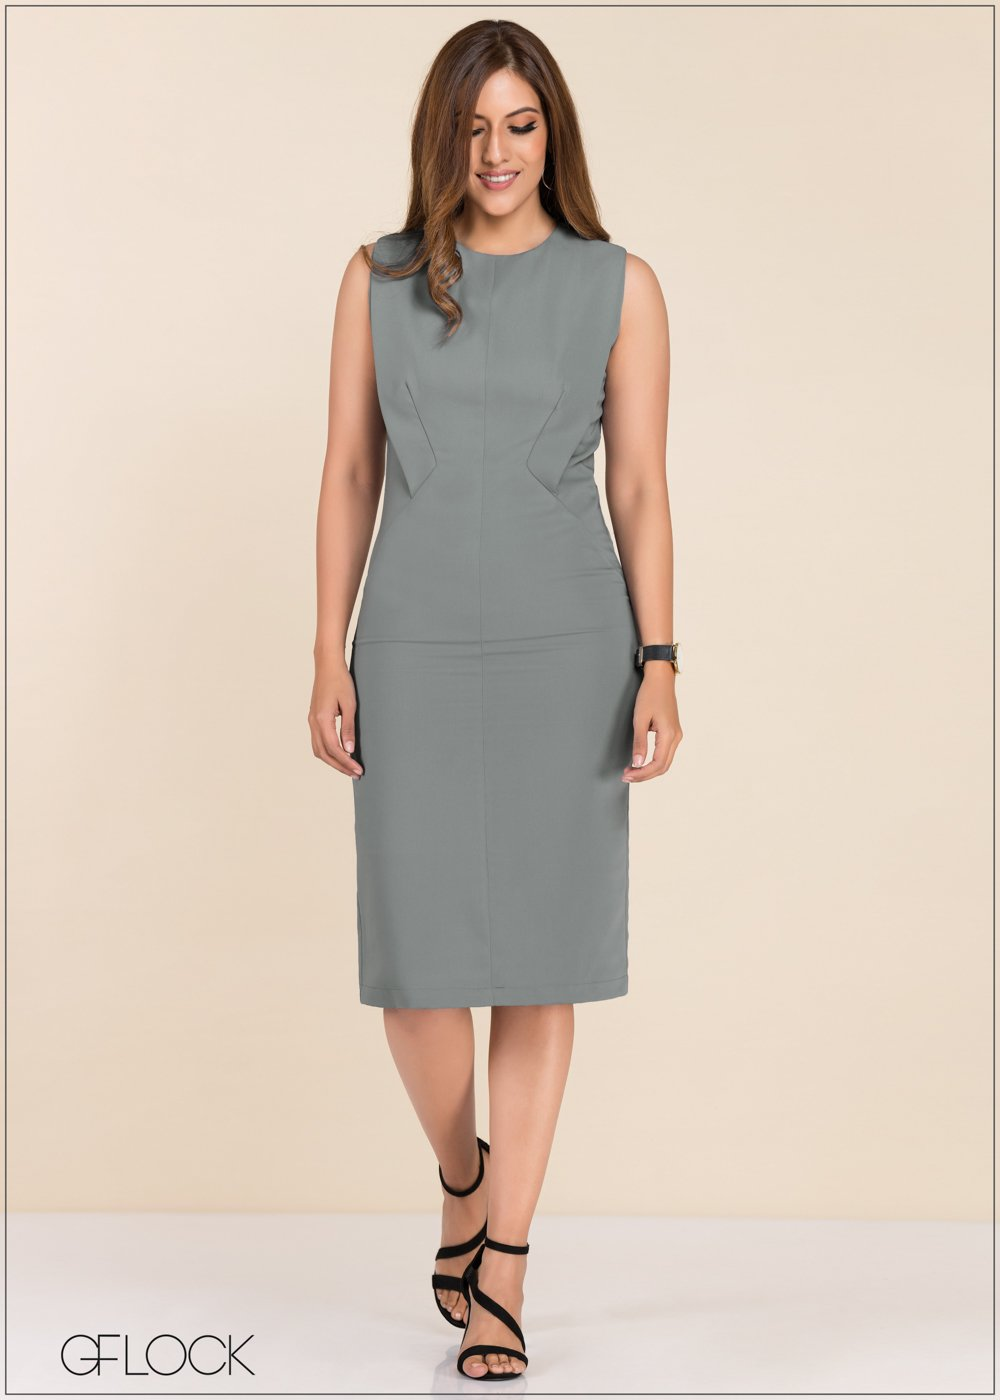 GFLOCK - [product_sku] - Women_Dresses - Dress With Front Detail